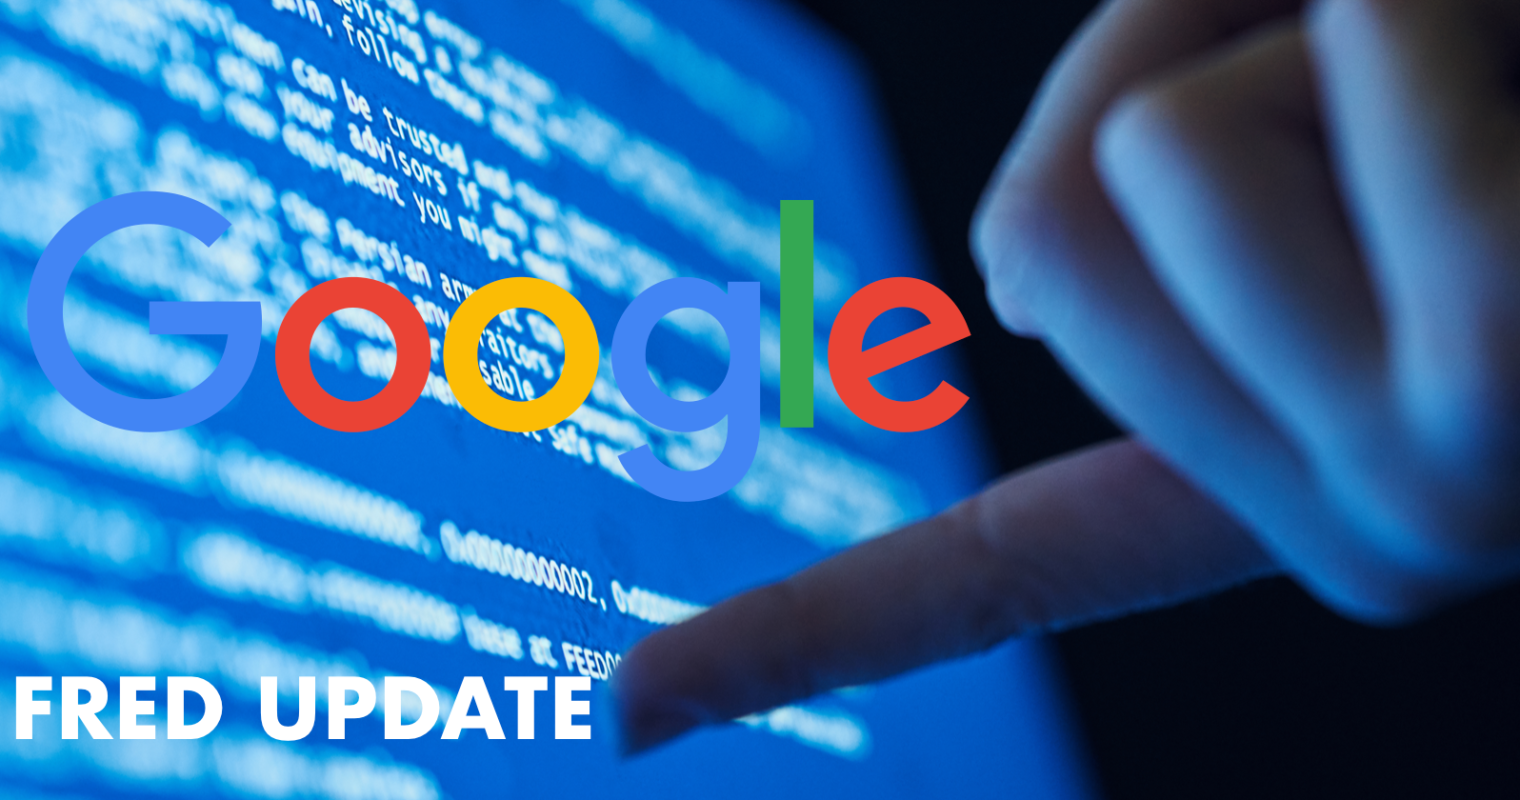 Everything You Need to Know About the Google 'Fred' Update